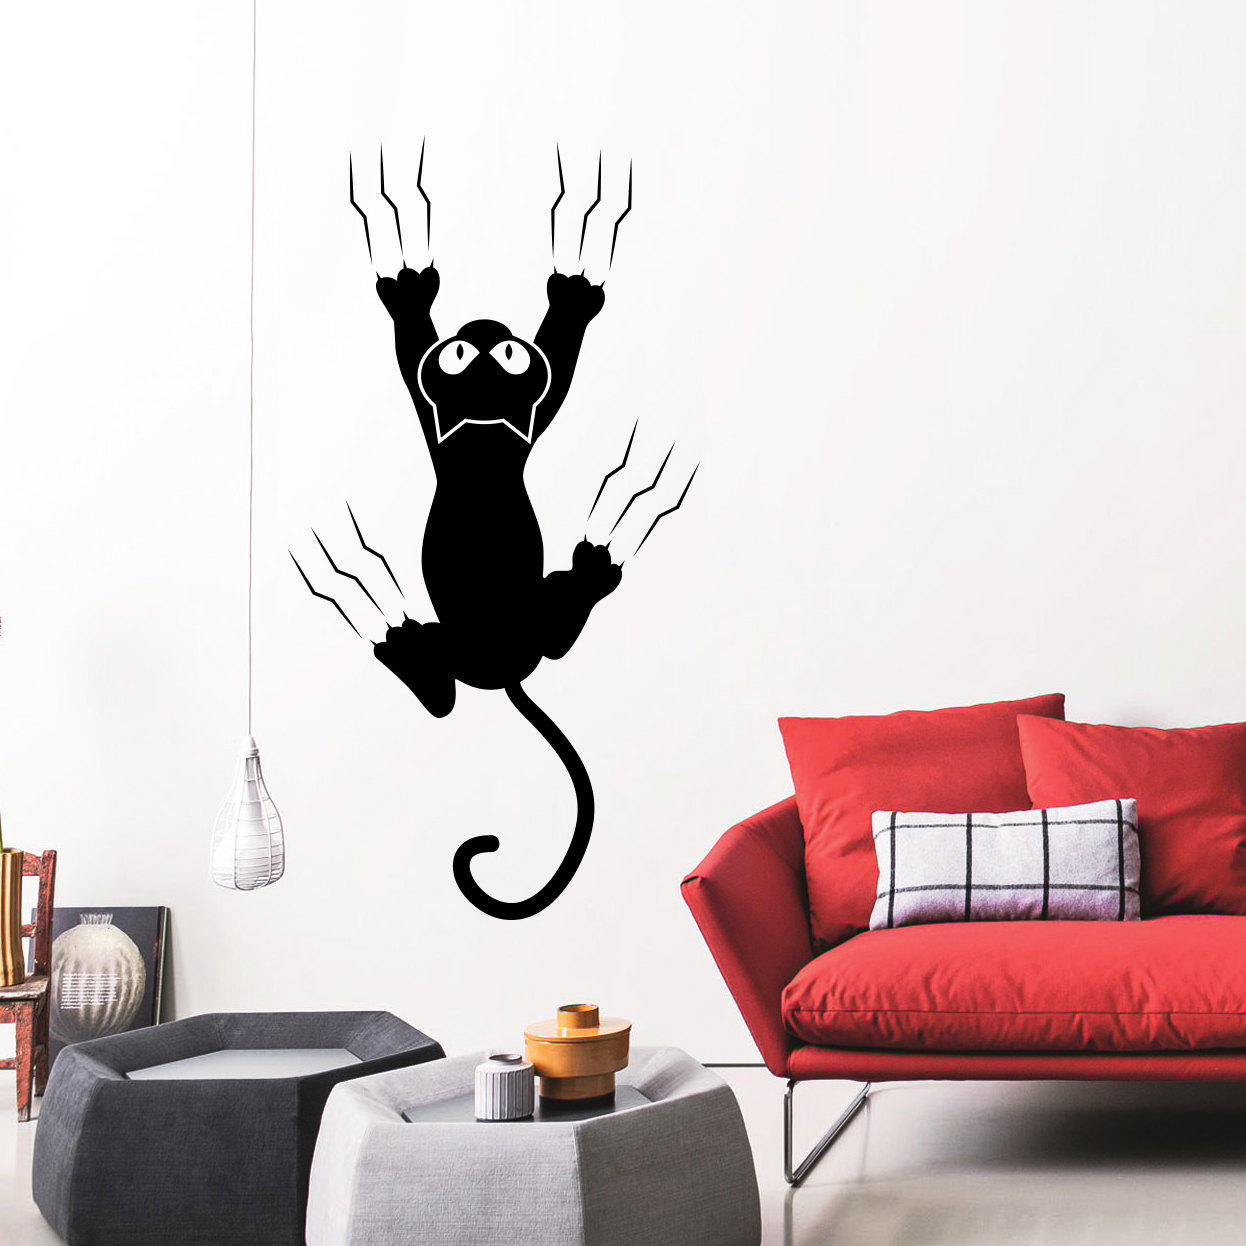 wall decals animals target color the walls of your house wall decals animals target wall decal cat scratches pet silhouette from decalsfromdavid on